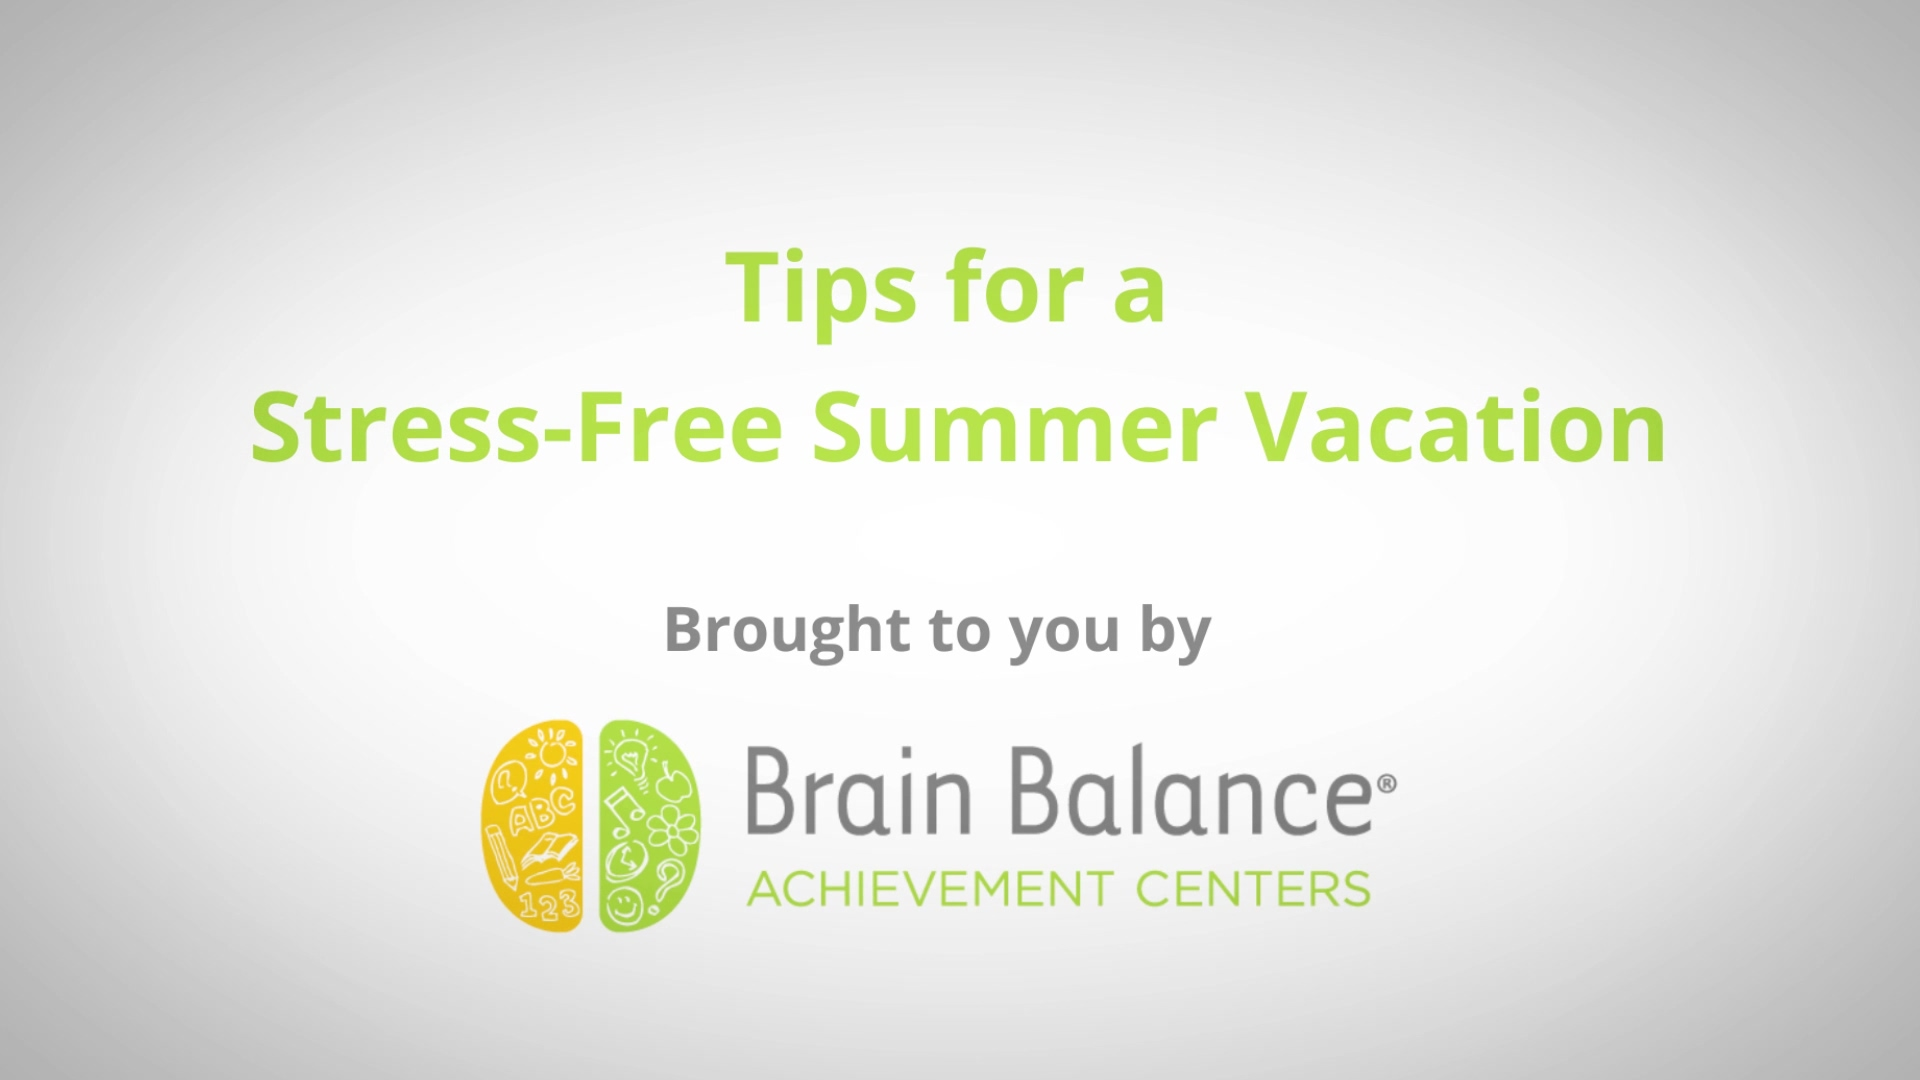 Brain Balance Achievement Centers — Tips for a stress-free summer vacation